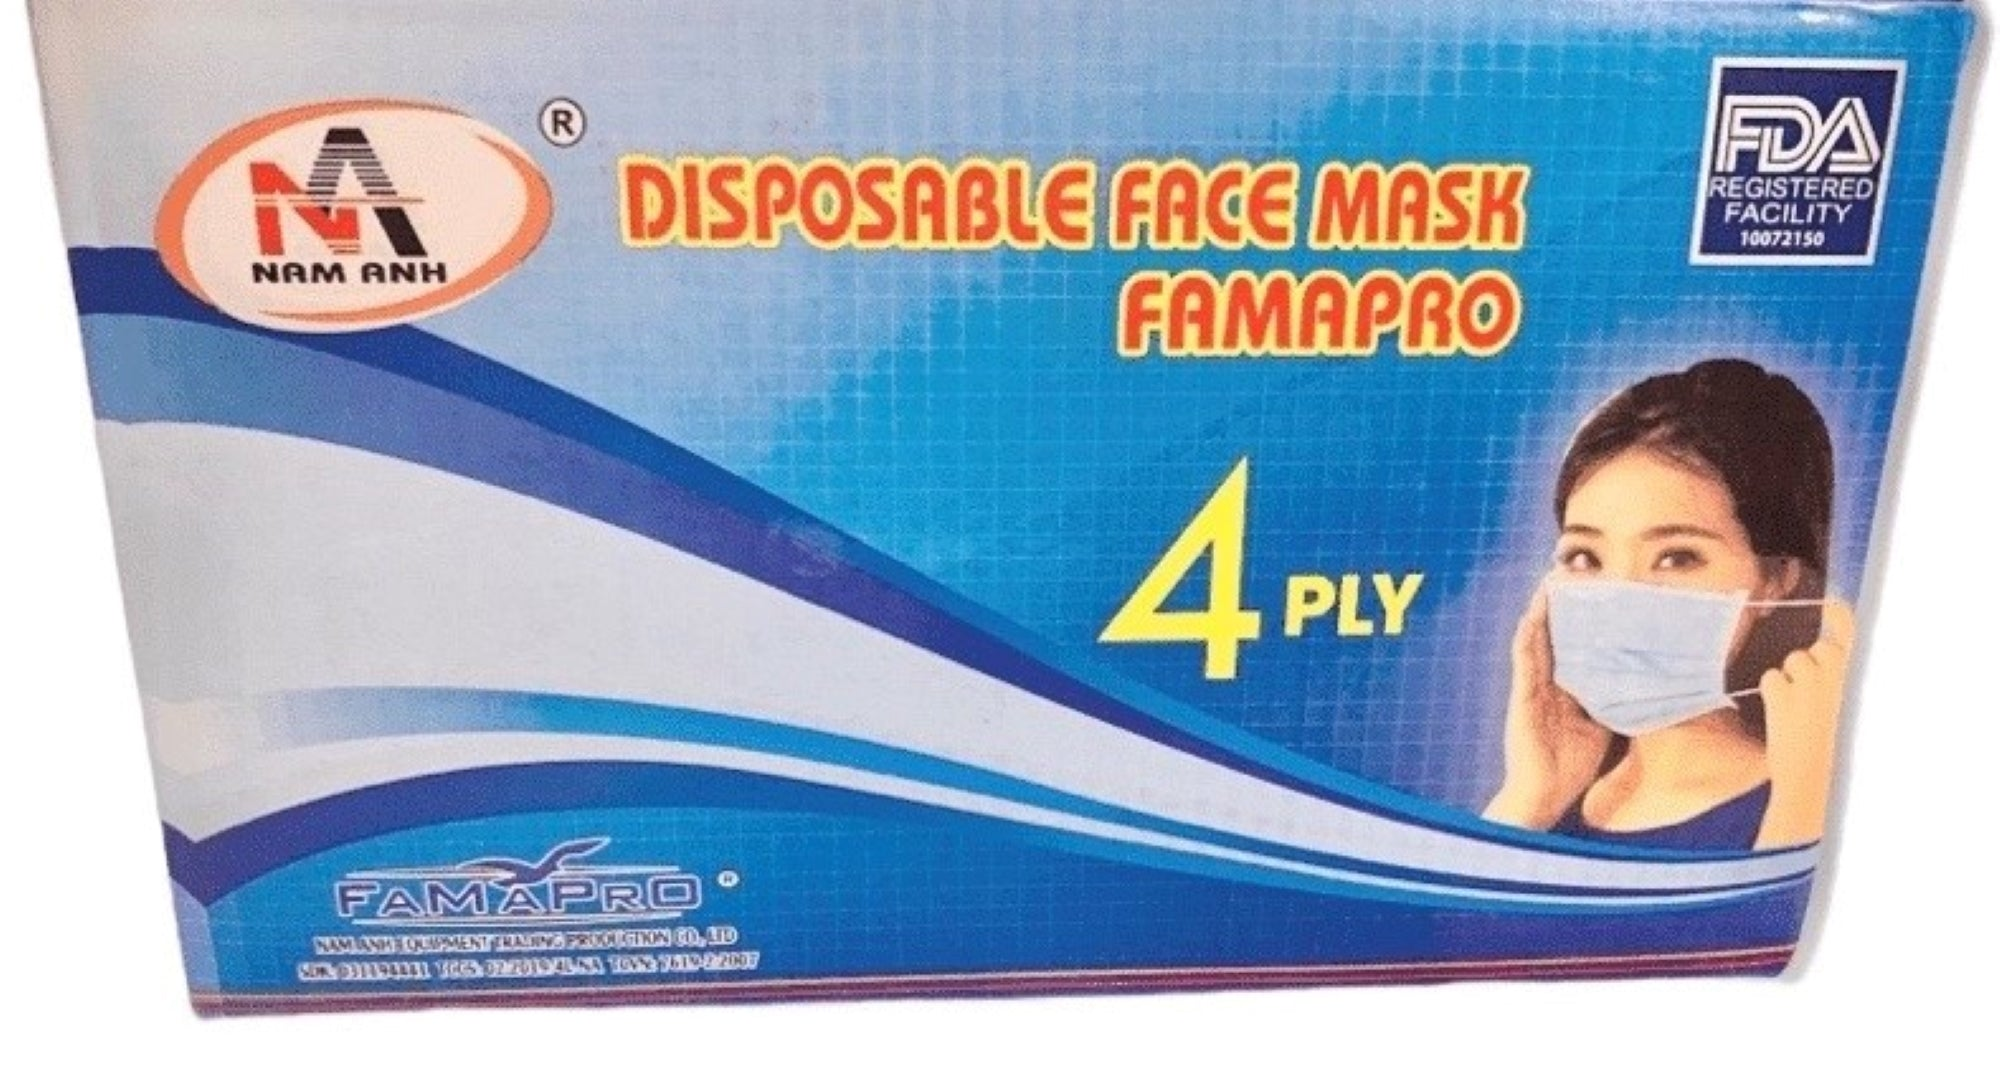 FAMAPRO-4Ply Disposable Facial Mask Thick Layers FDA Approved Non Woven Comfortable Breathable Filter Safety Masks with Adjustable Earloop, Mouth and Nose Protection Indoor and Outdoor Use (Blue-Pack of 50)